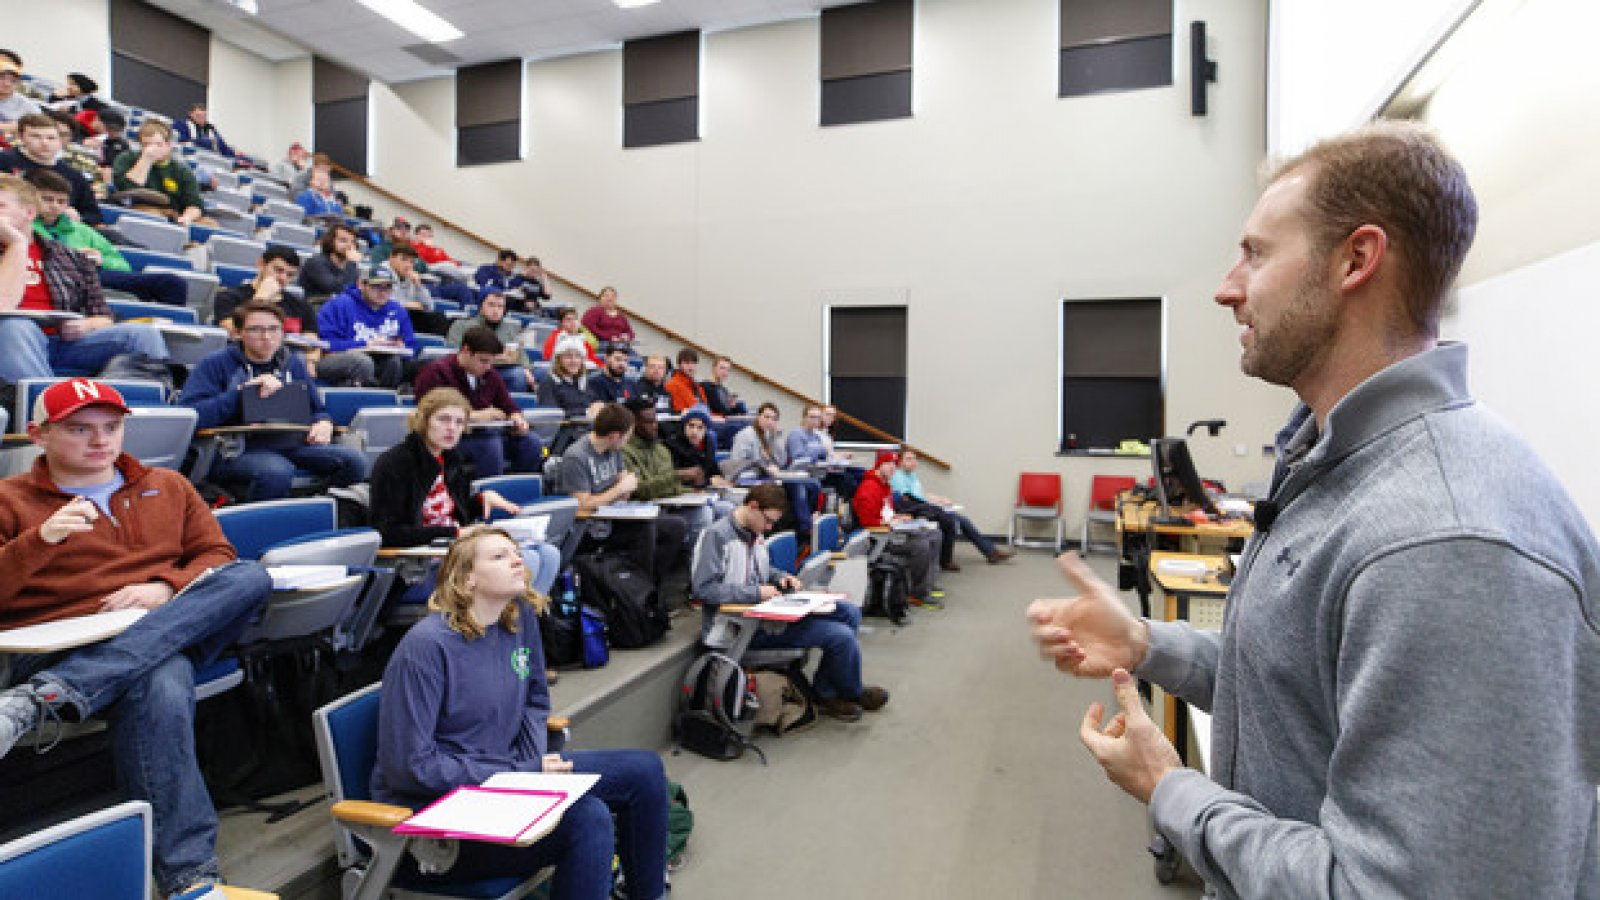 Curtis Tomasevicz discusses an Introduction to Electrical Engineering II concept with students in the Walter Scott Engineering Center on Feb. 5. The former Husker and Olympic gold medal winner is now teaching and conducting sports-related research at Nebraska. (Photo by Craig Chandler / University Communication)